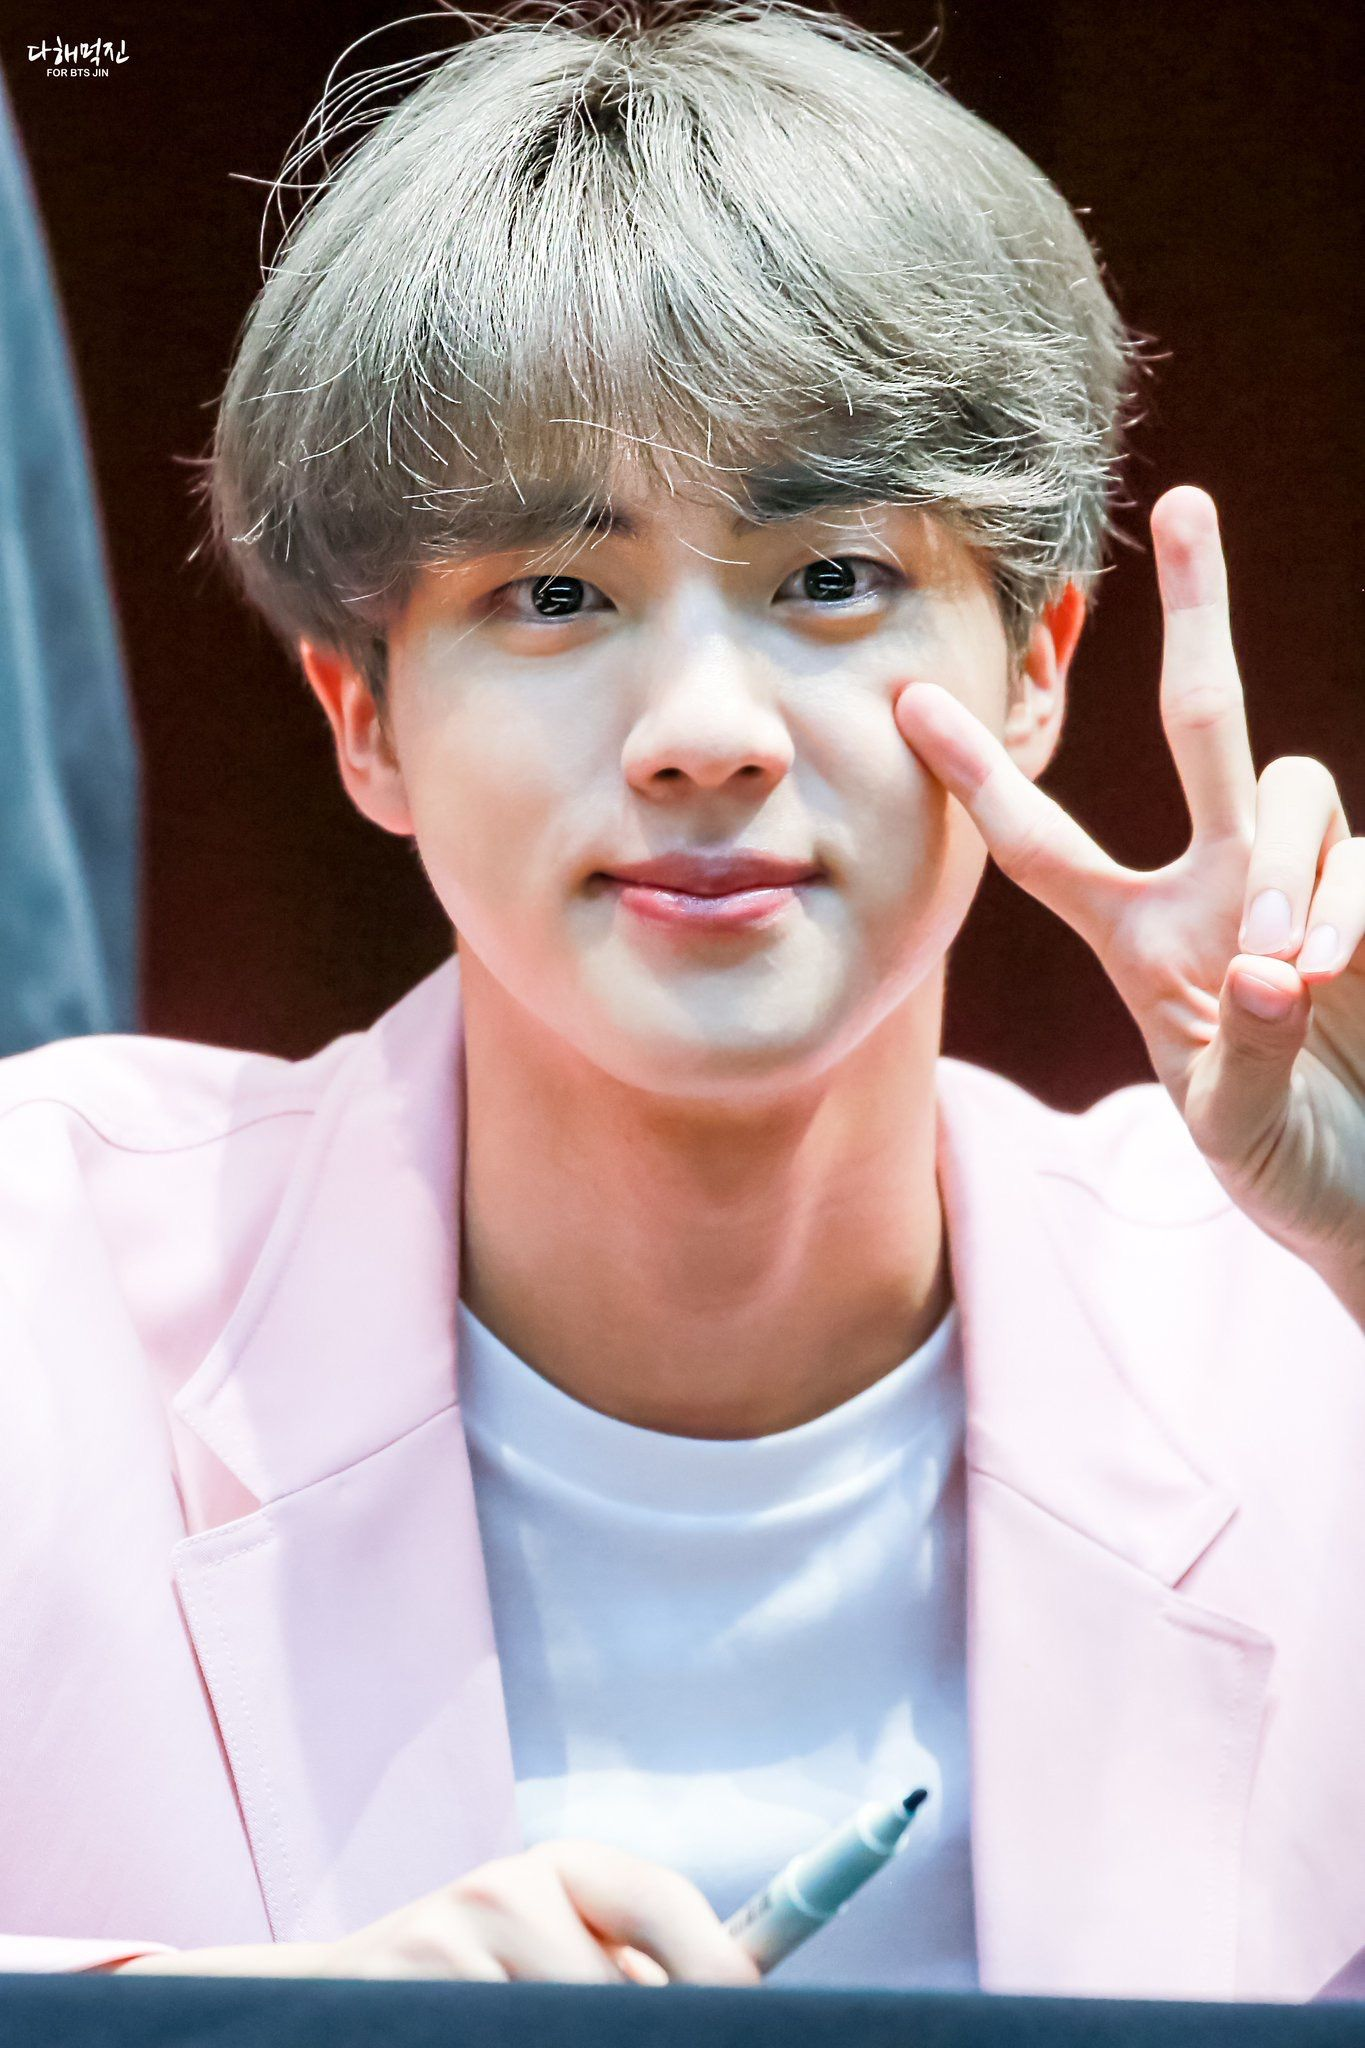 Image result for jin fan meeting bwl